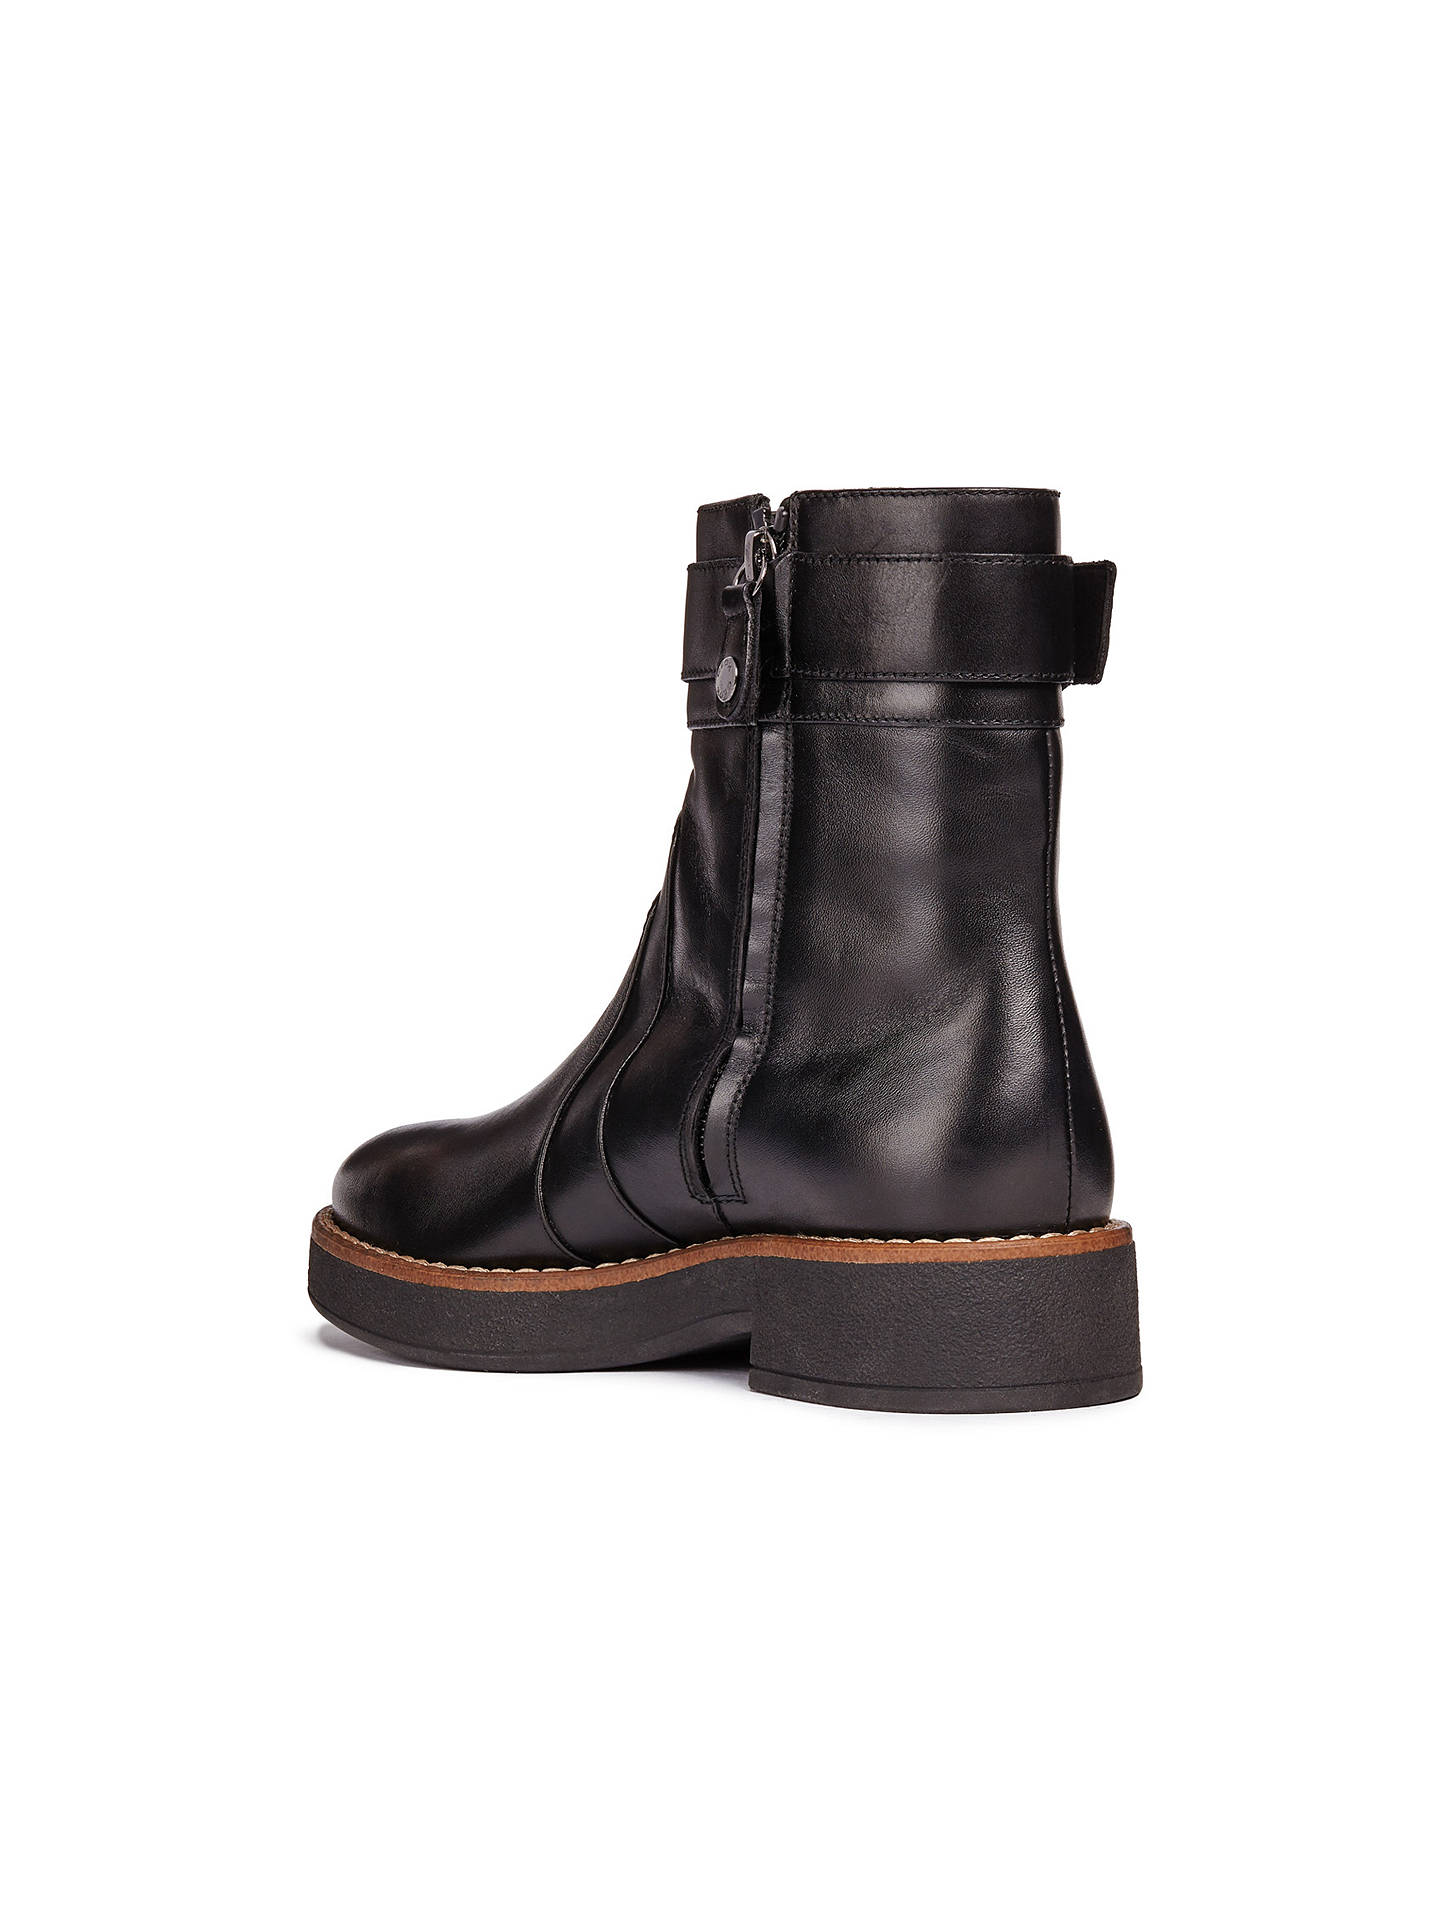 Geox Women's Adrya Ankle Boots, Black Leather at John Lewis